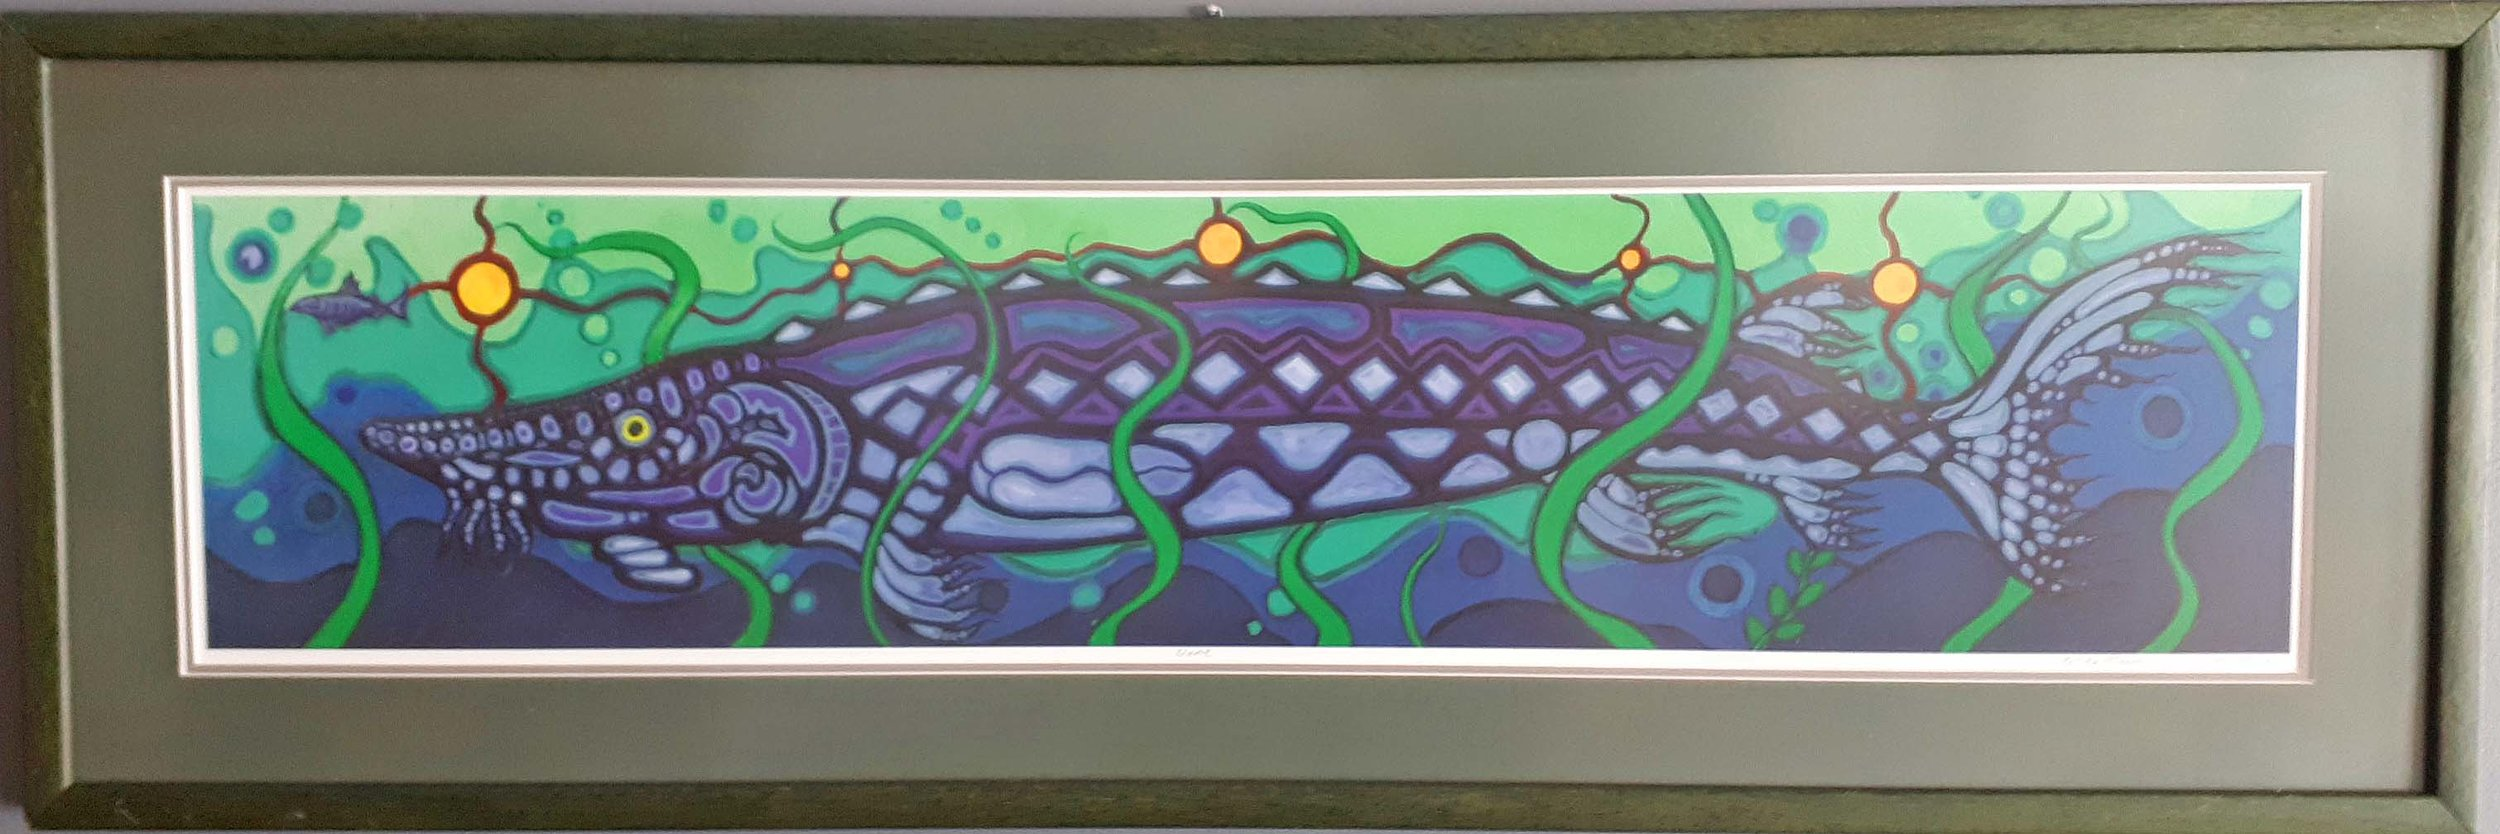 "Kelley Morrell, Kenora, Original Print 7/400, ""Name"", Size: 40 x 14, Price: 195.00"